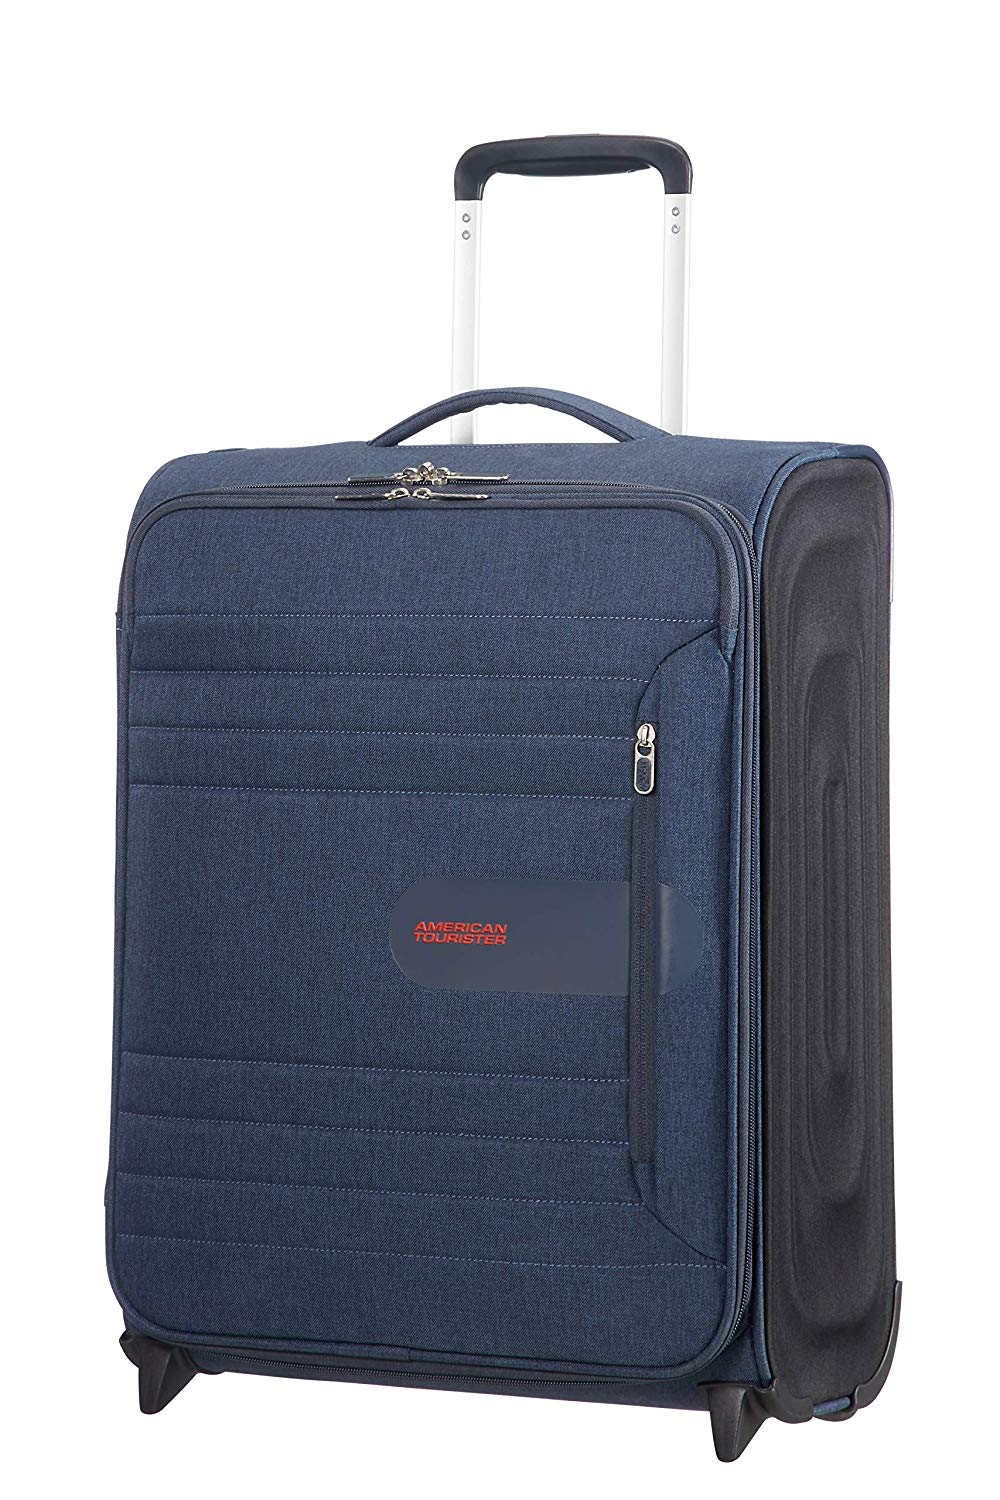 American Tourister Sonicsurfer - Upright 55/20 Koffer, 55 cm, 43 L, Midnight Navy